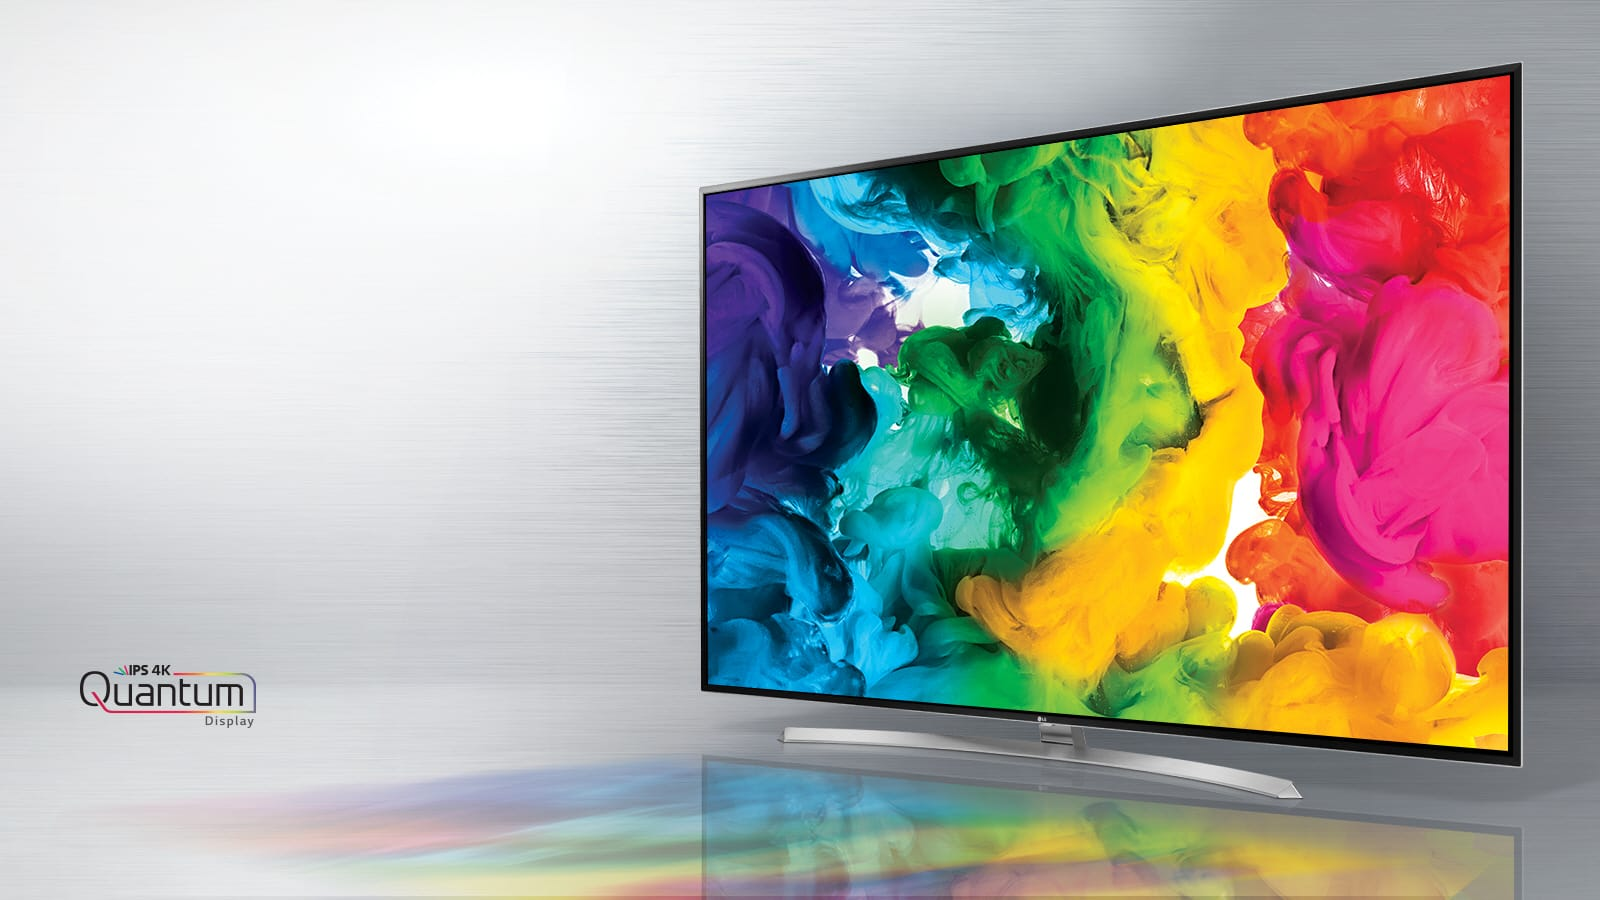 LG_SuperUHD_Quantum-Display